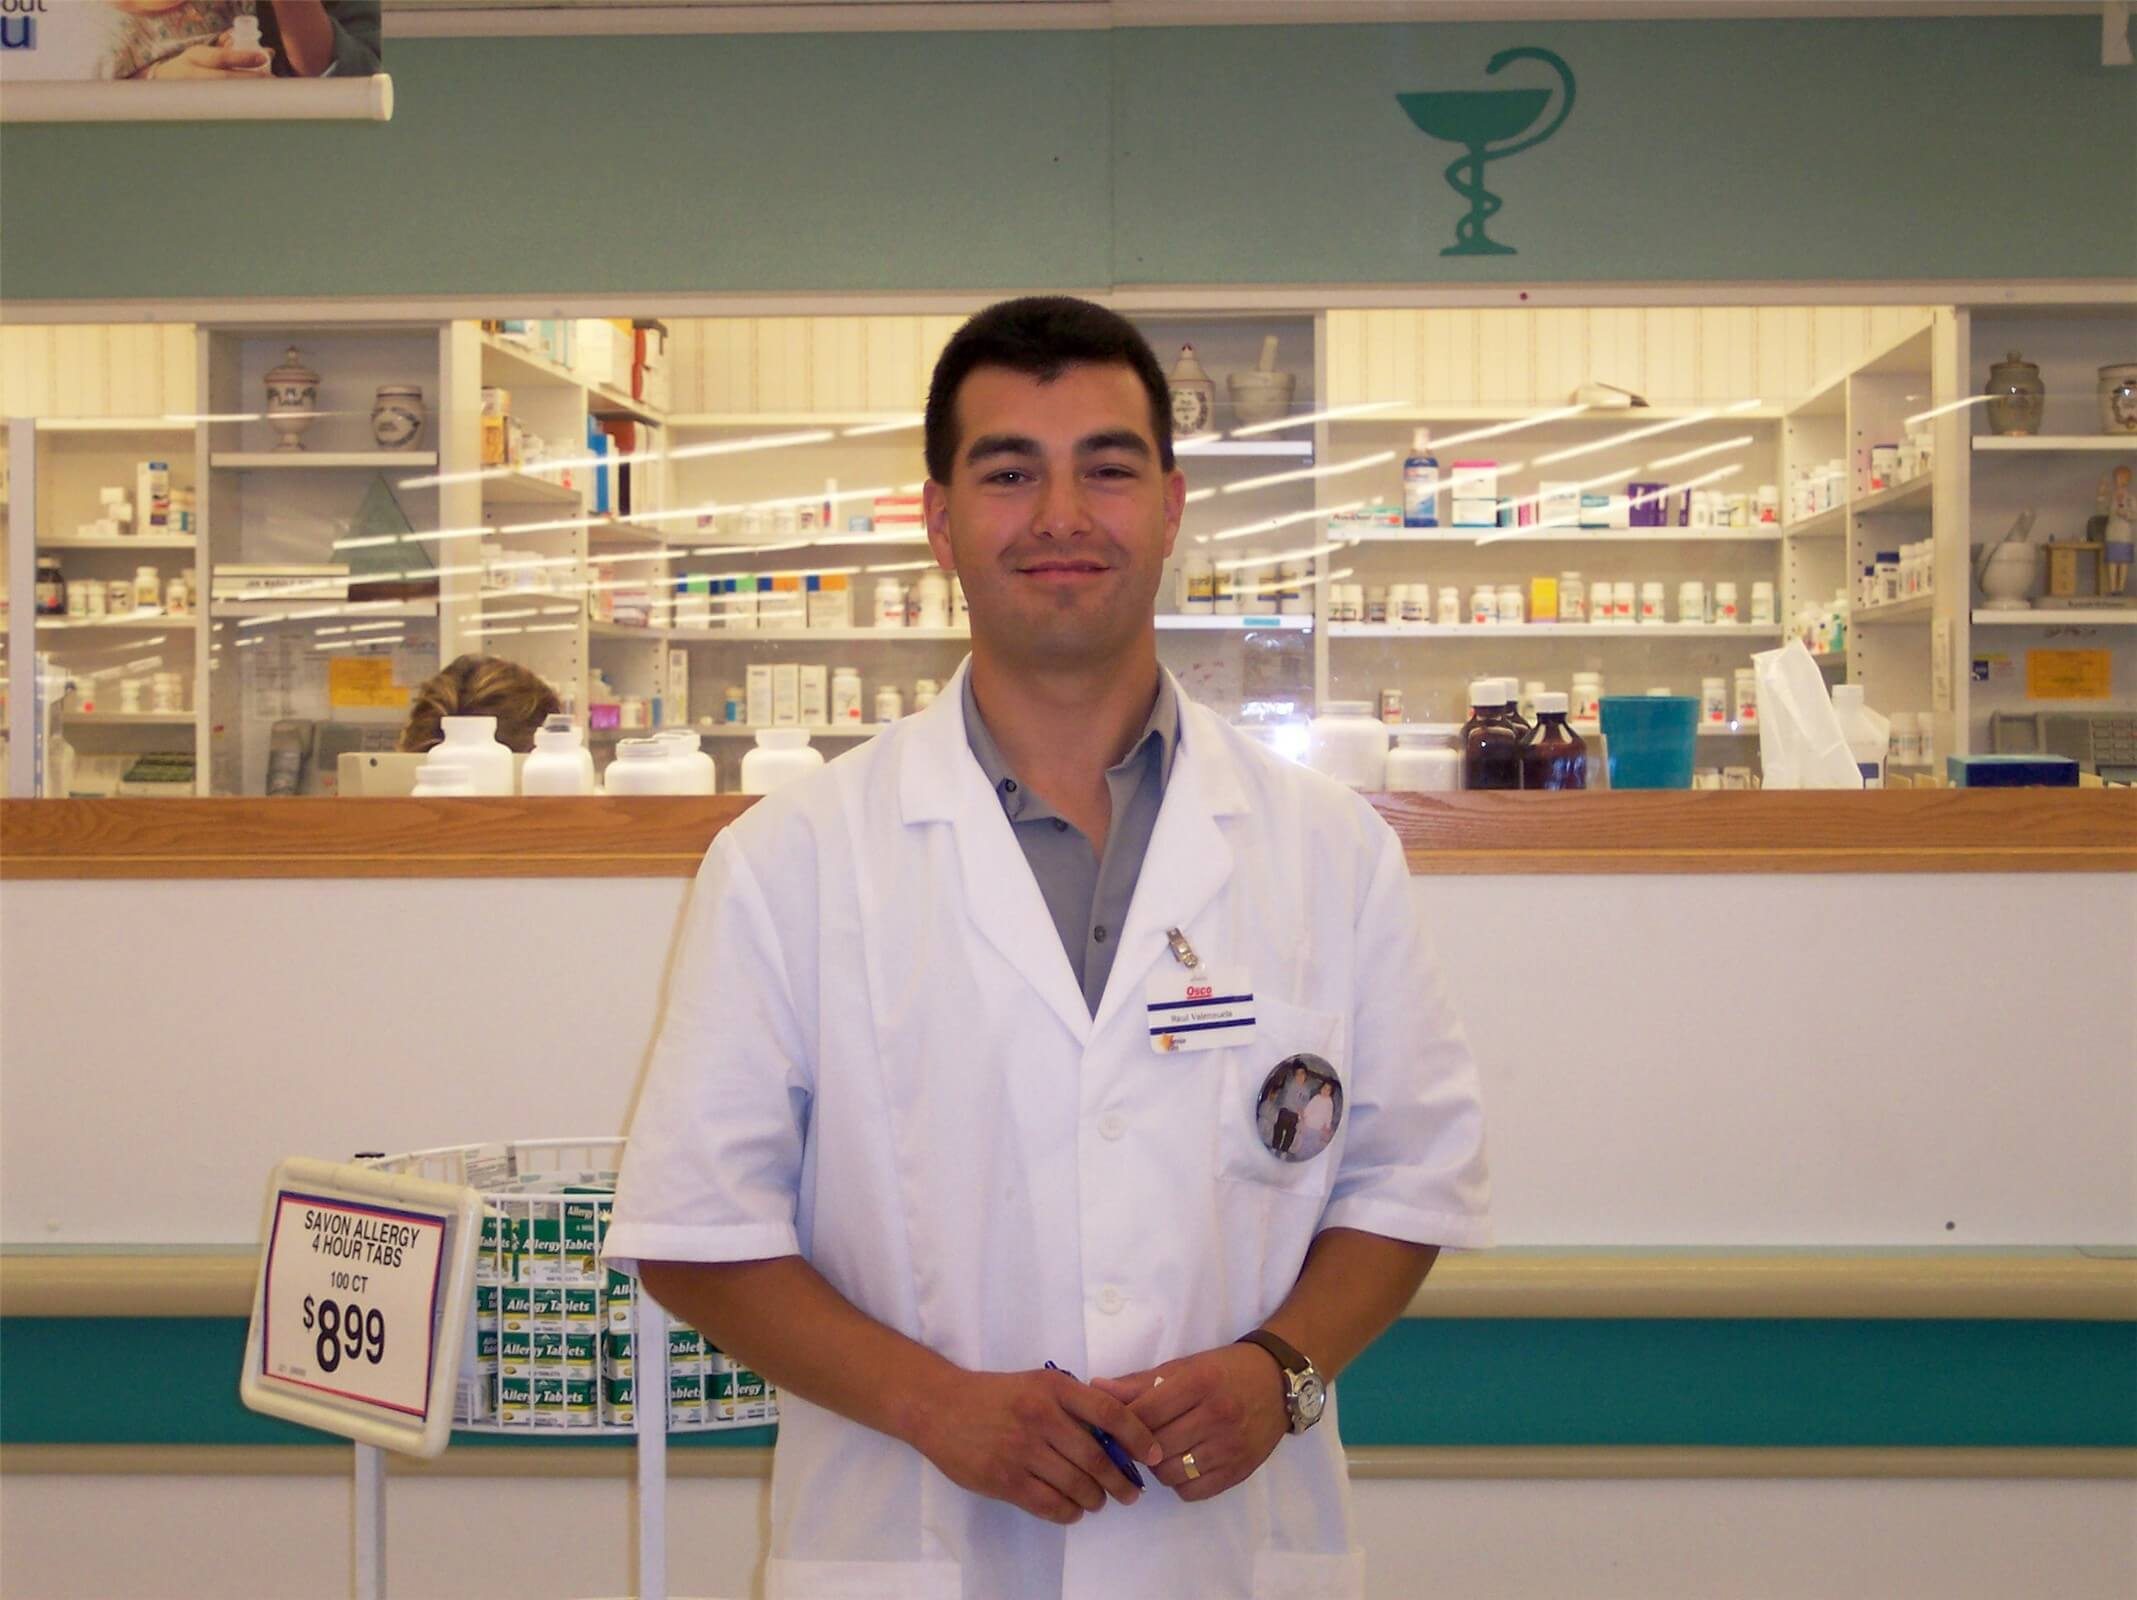 Which career is more beneficial in the start and in the long run, Nuclear Engineer or Pharmacist?